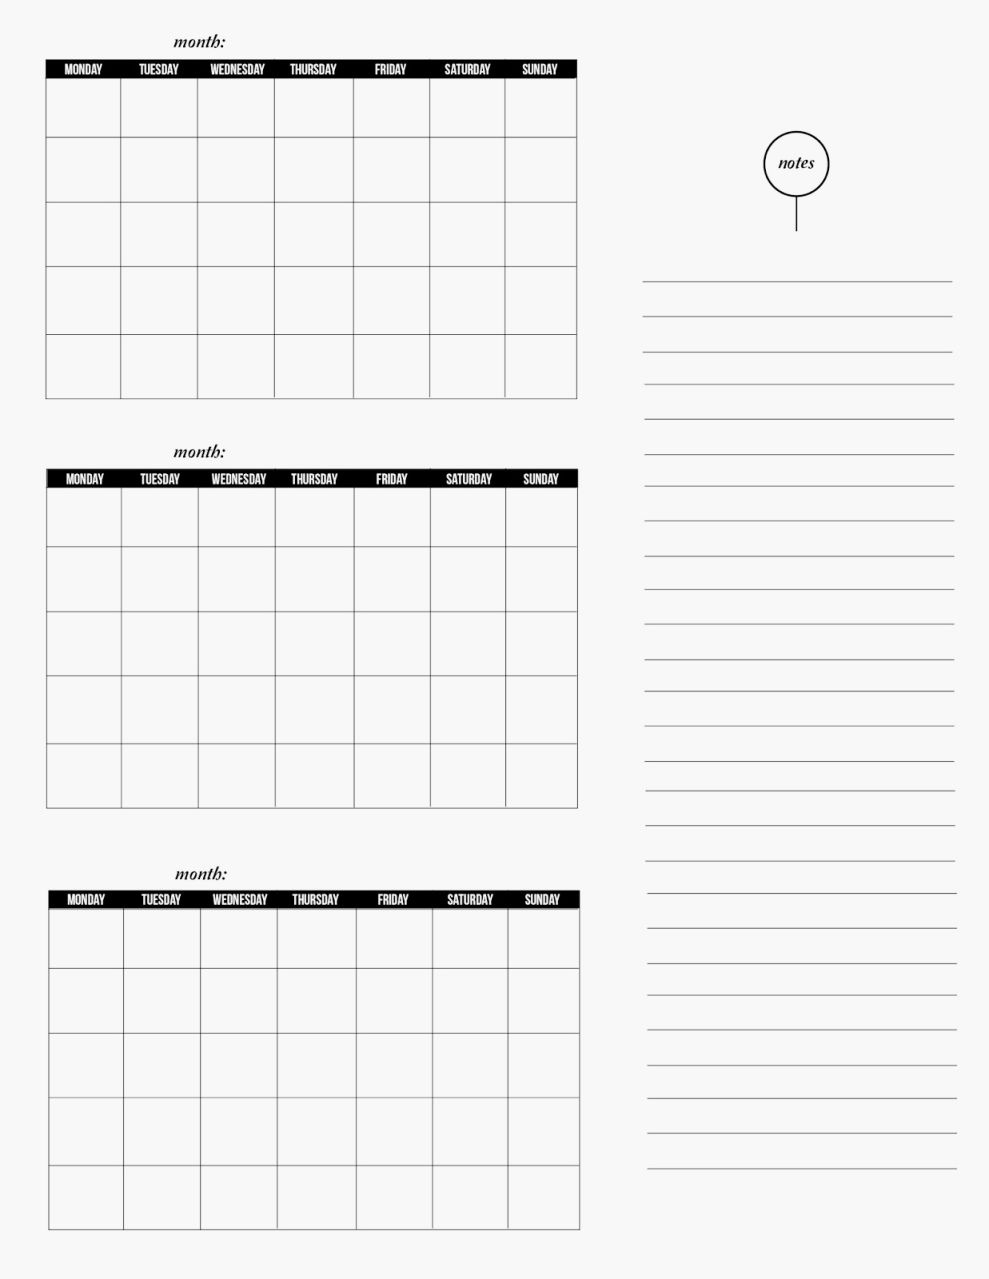 Blank Printable 3 Month Calendar | Seven Photo  Blank 3 Month Printable Calendar